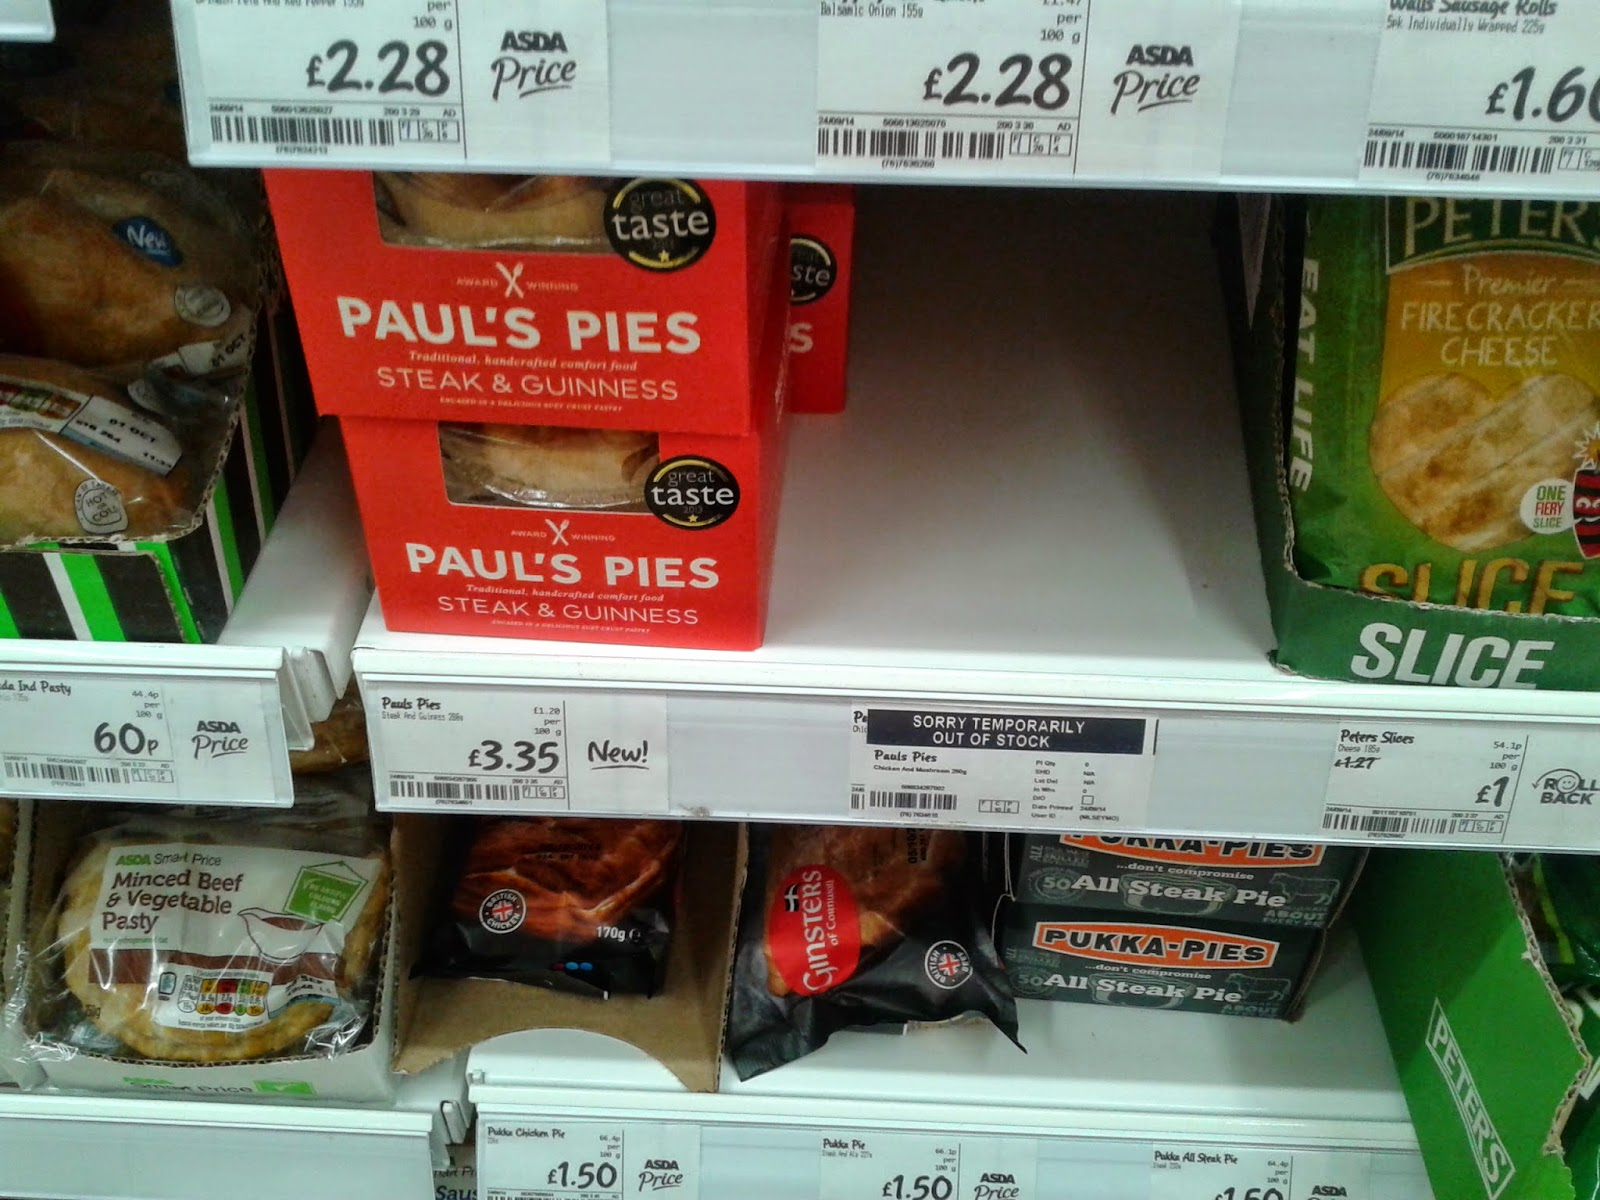 ASDA Pie shelf